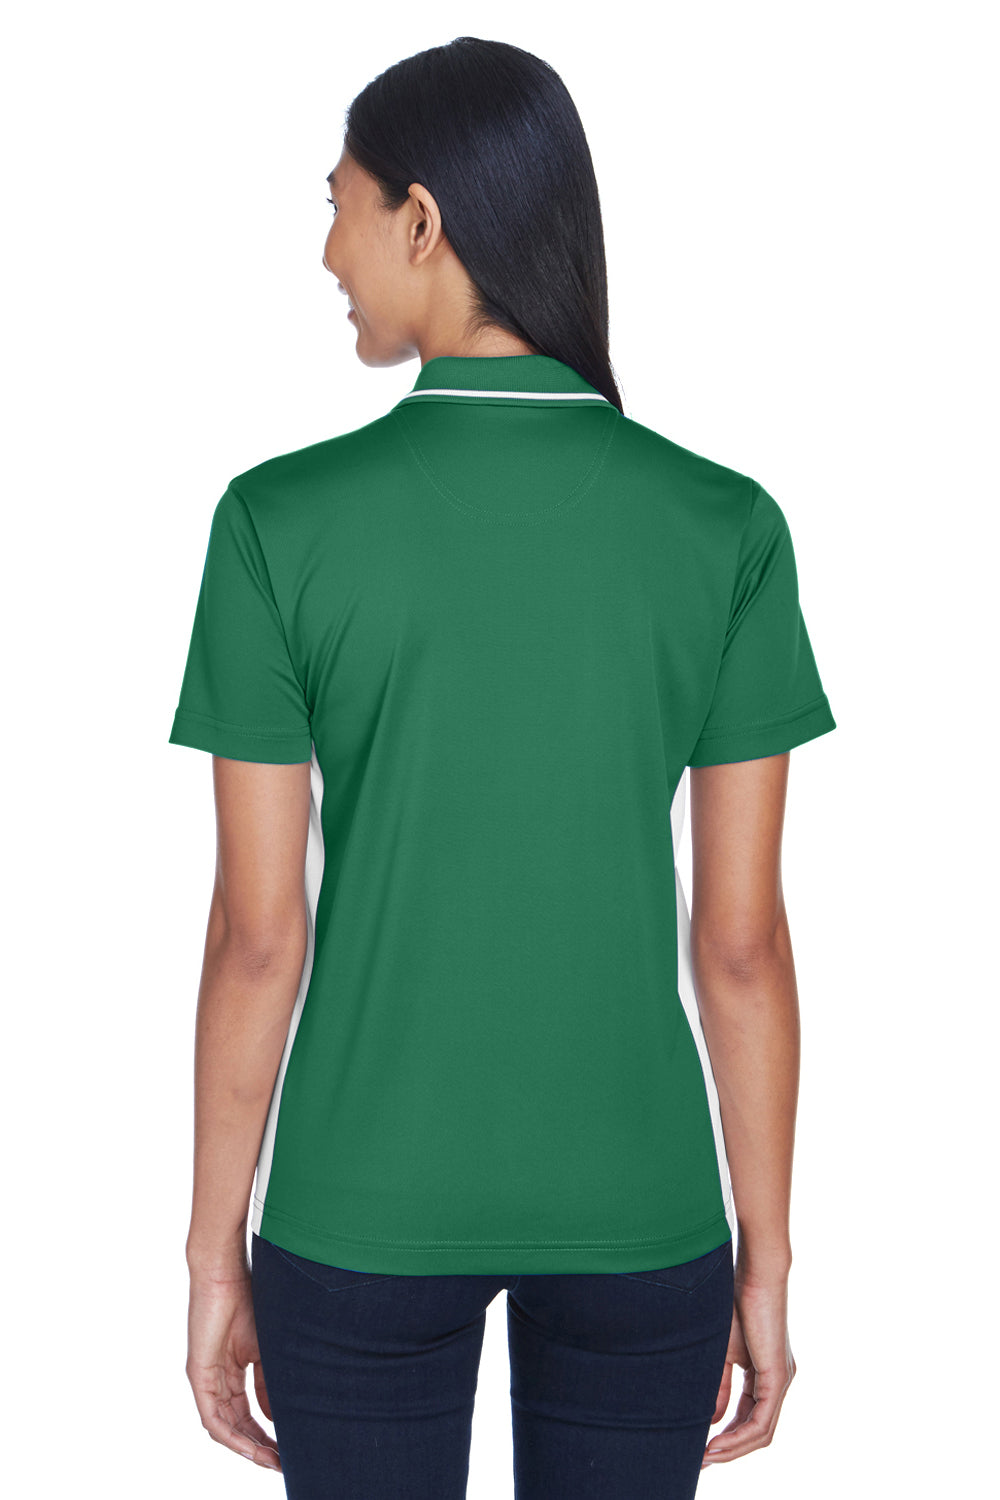 UltraClub 8406L Womens Cool & Dry Moisture Wicking Short Sleeve Polo Shirt Forest Green/White Back